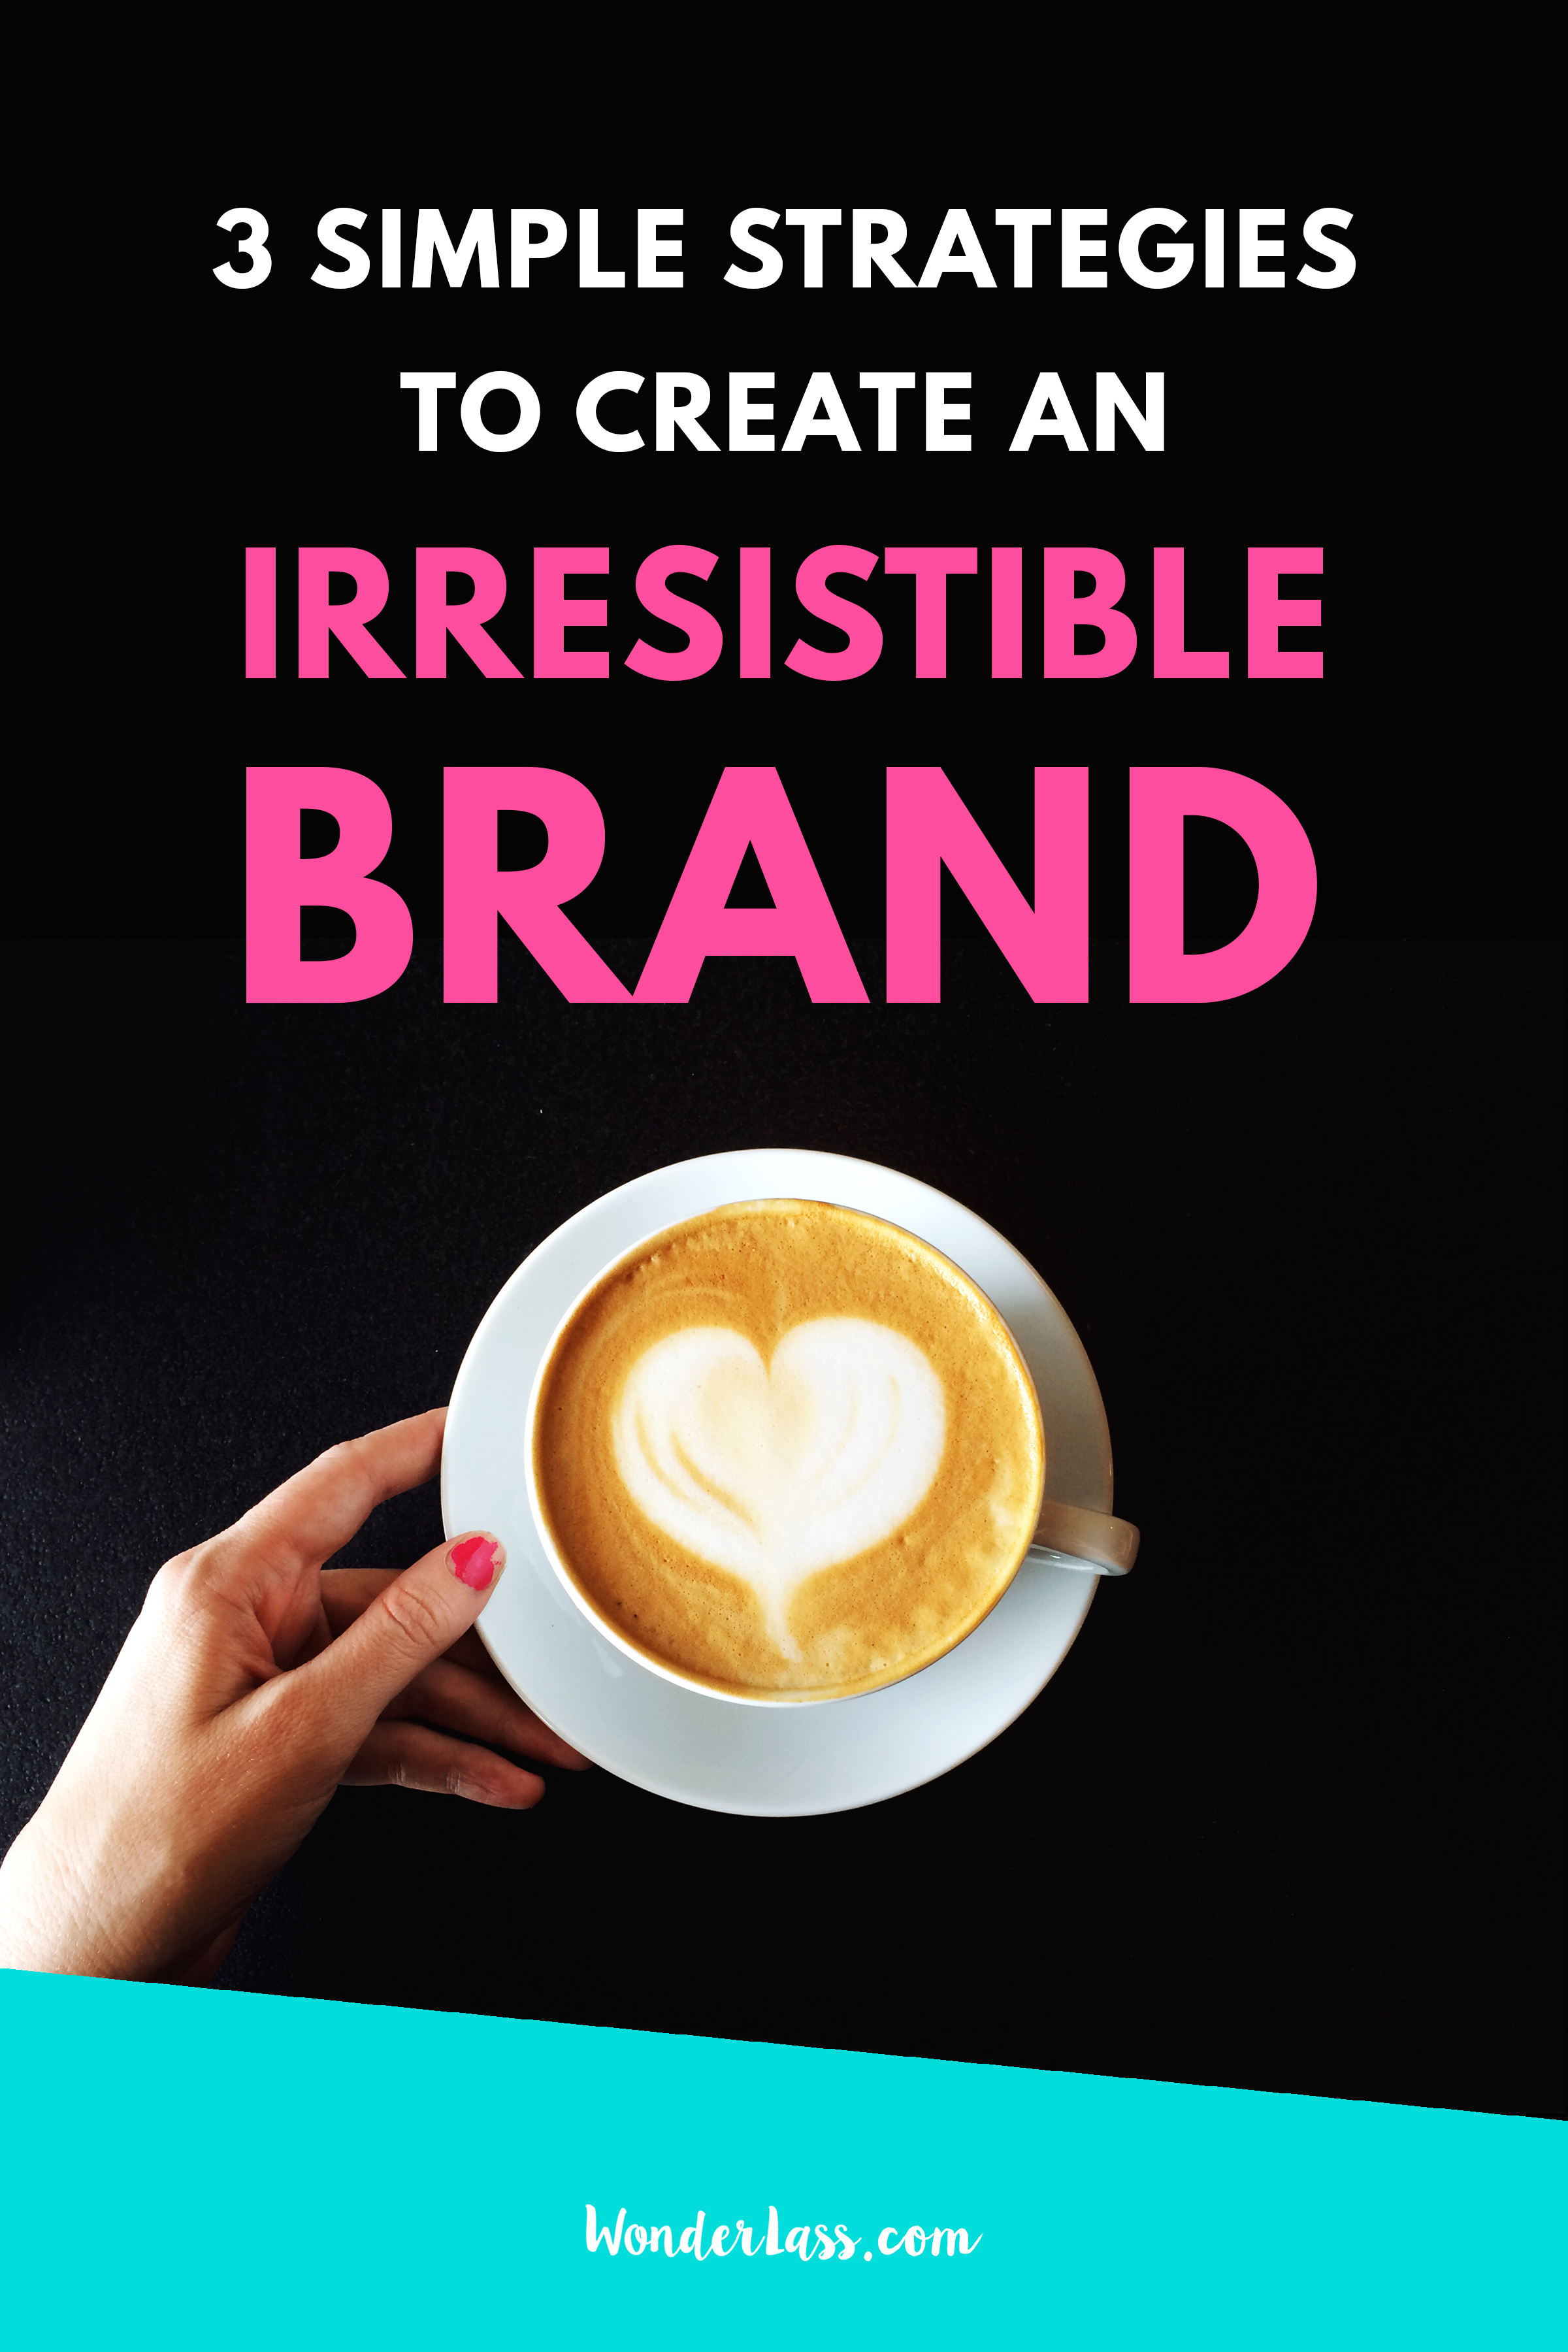 3 Simple Strategies to Create an Irresistible Brand | Check out this blog post if you'd like to effortlessly attract your dream customers with 3 simple strategies | Wonderlass